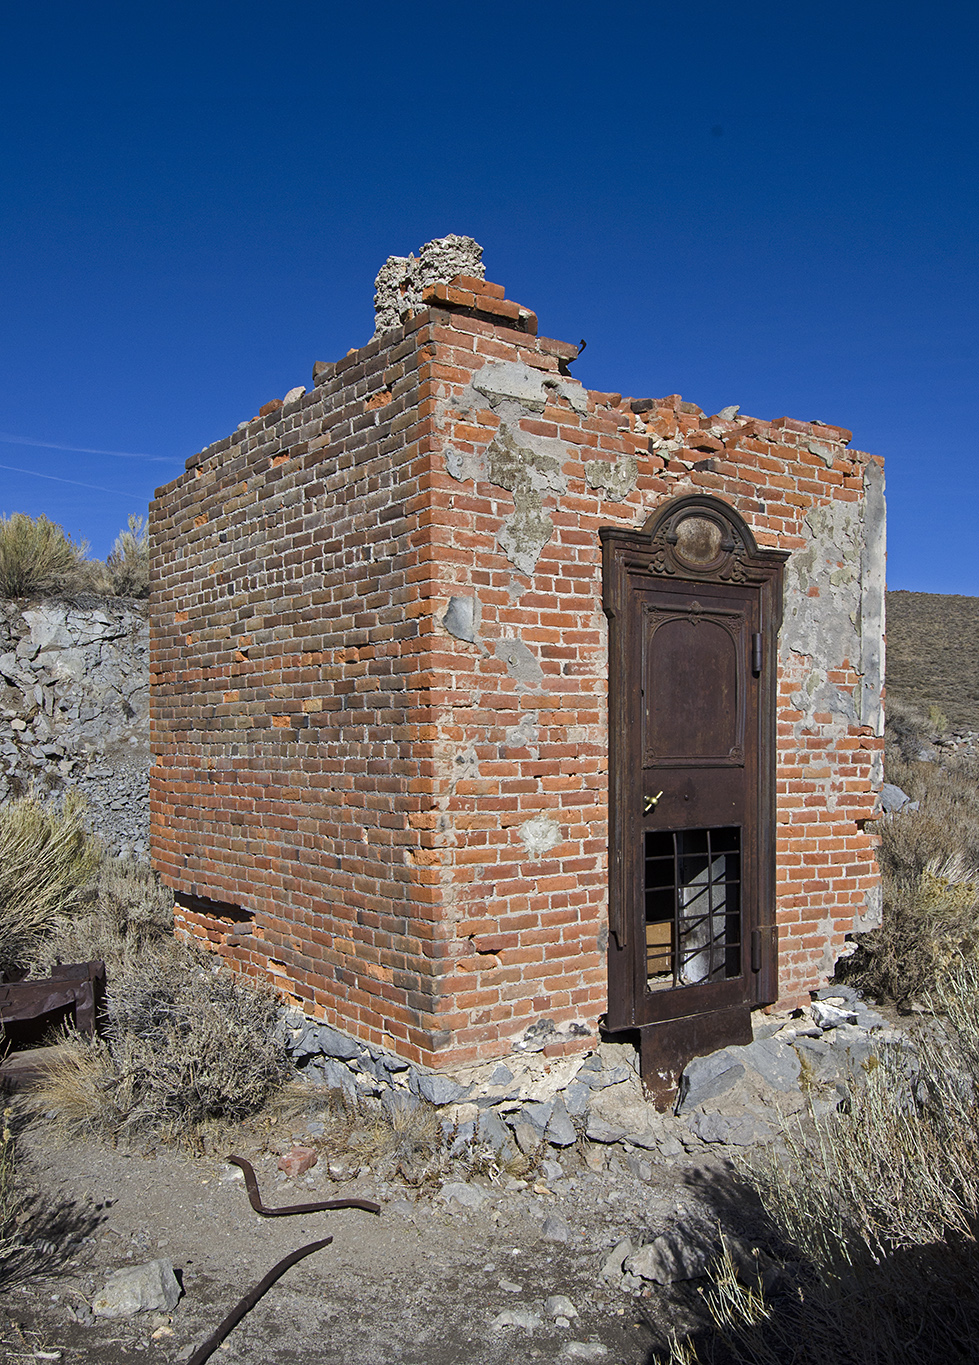 The Bodie Bank once stood here. James Cain bought it from E.L. Benedict in 1890. It escaped the fire of 1892 but was destroyed in the fire of 1932. This is the remains of the vault.